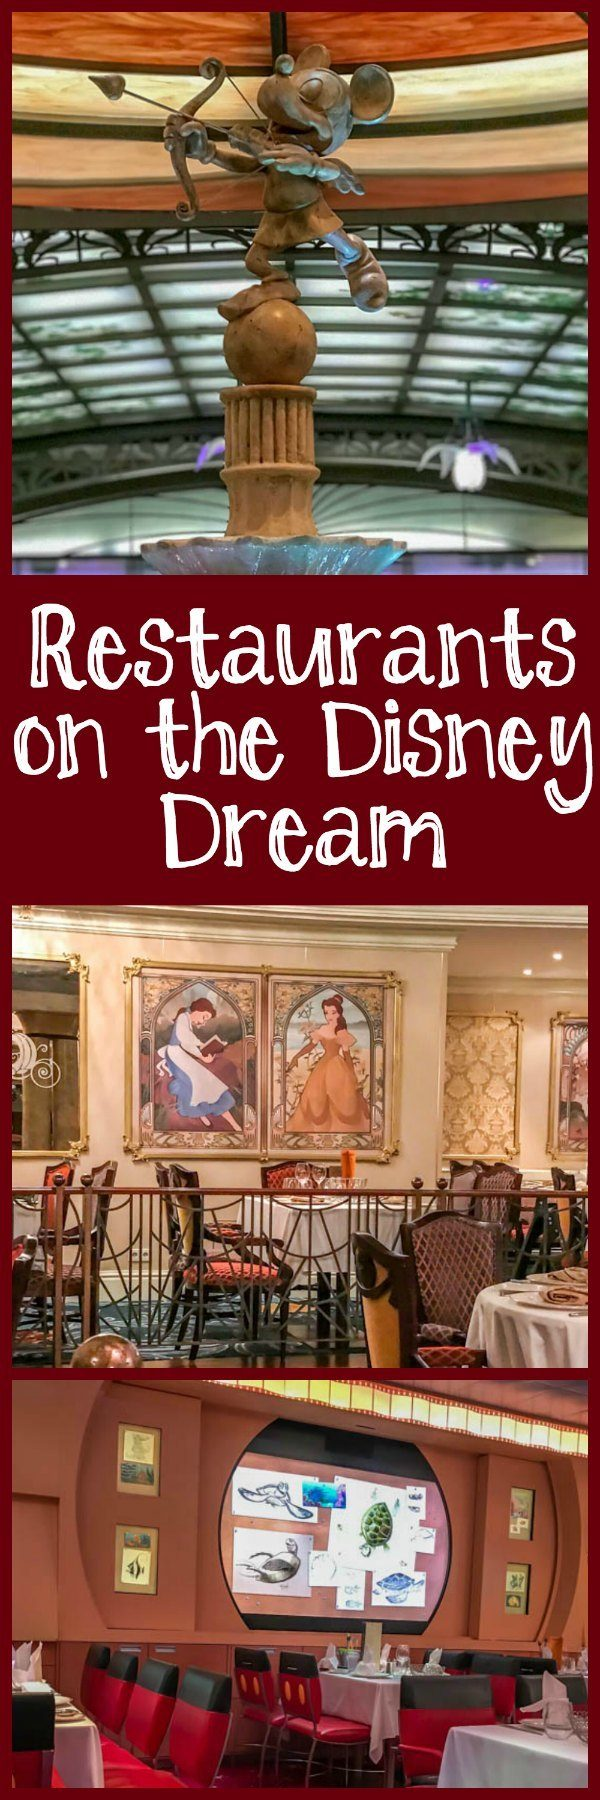 Restaurants on the Disney Dream, including Animator's Palate, Cabanas, and Enchanted Garden.